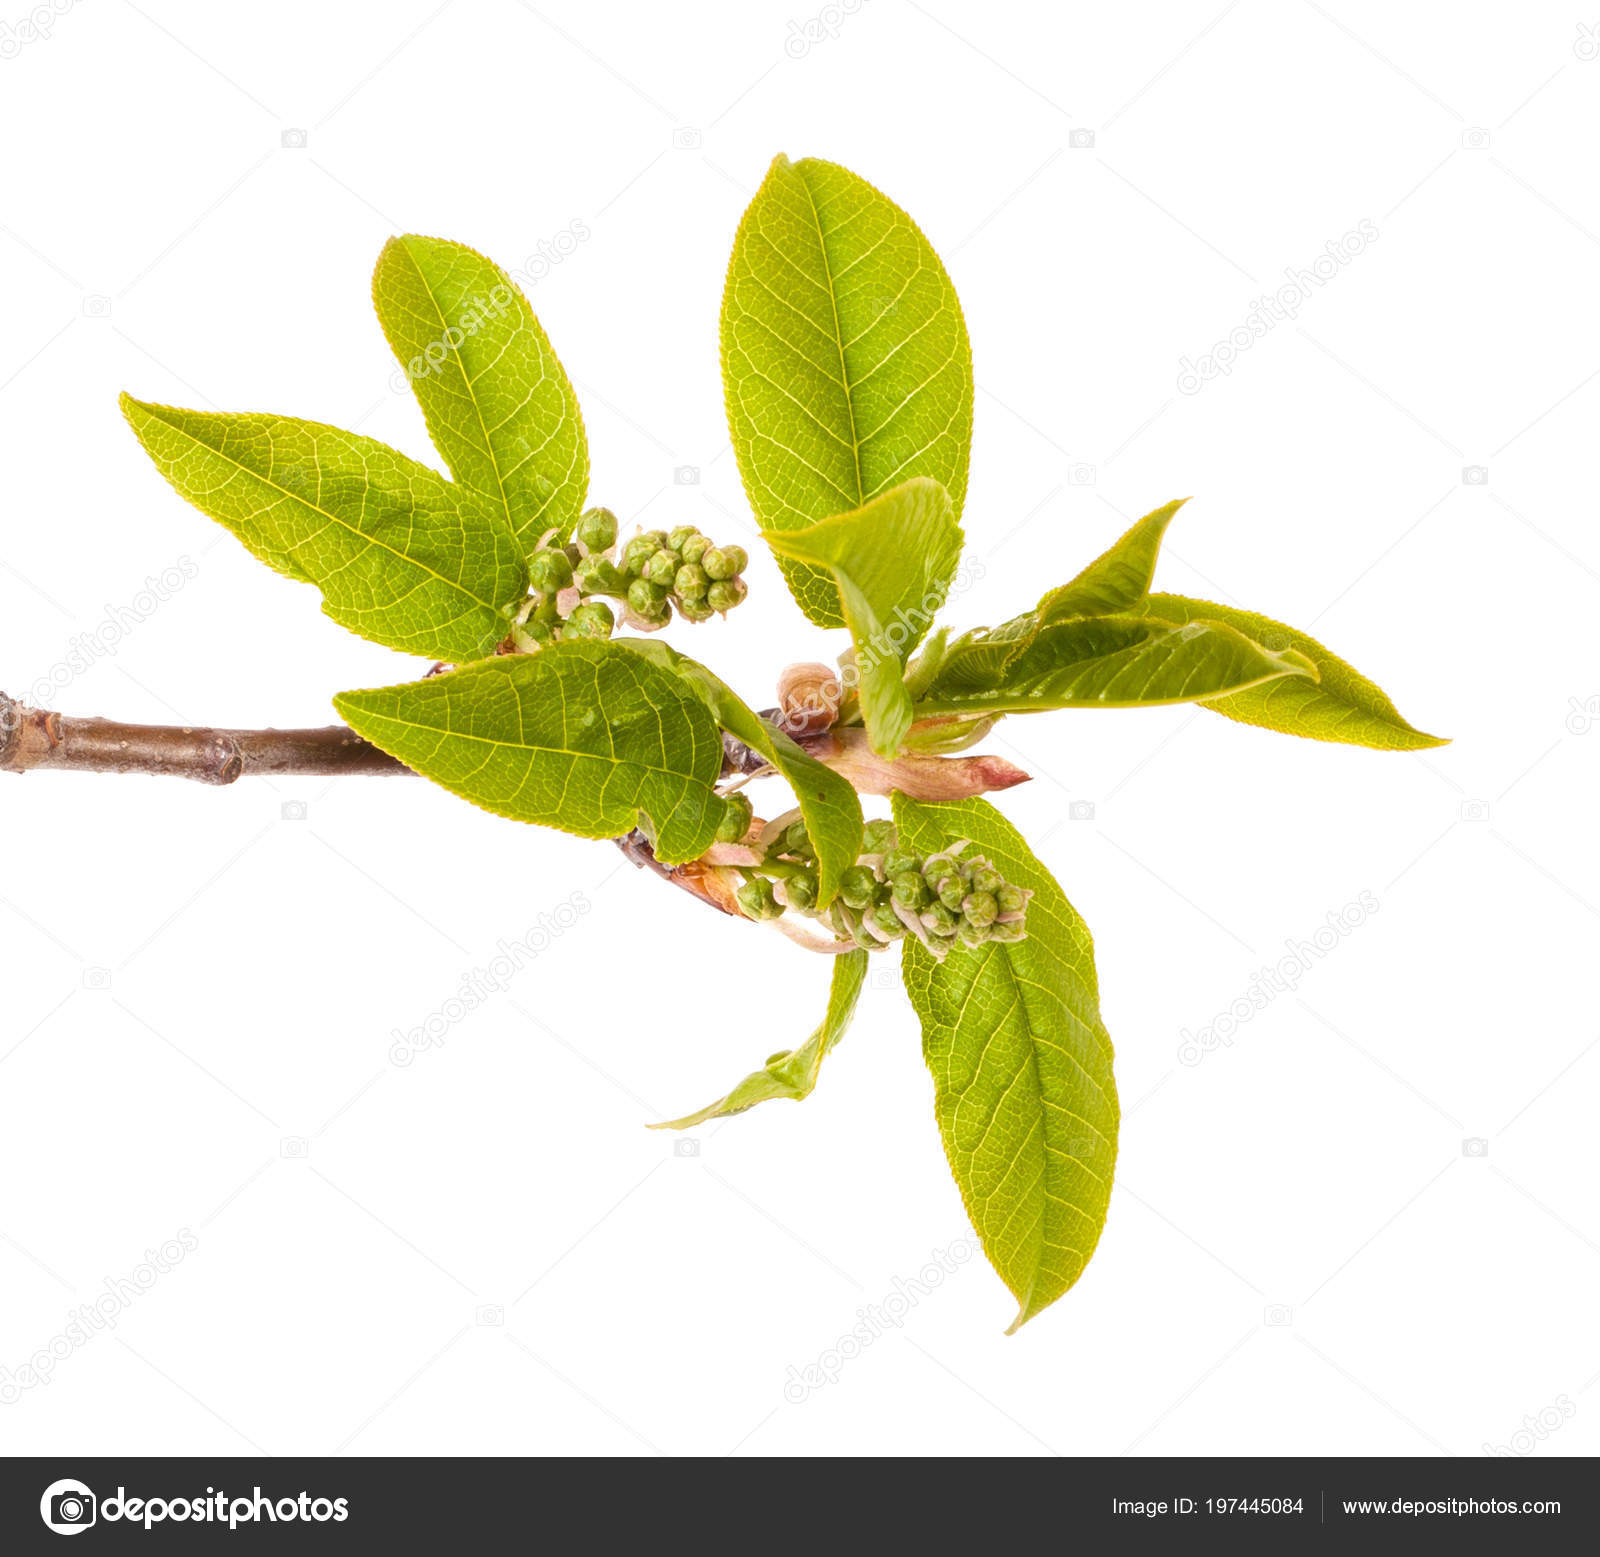 Bird Cherry Branch Small Leaves Isolated White Background